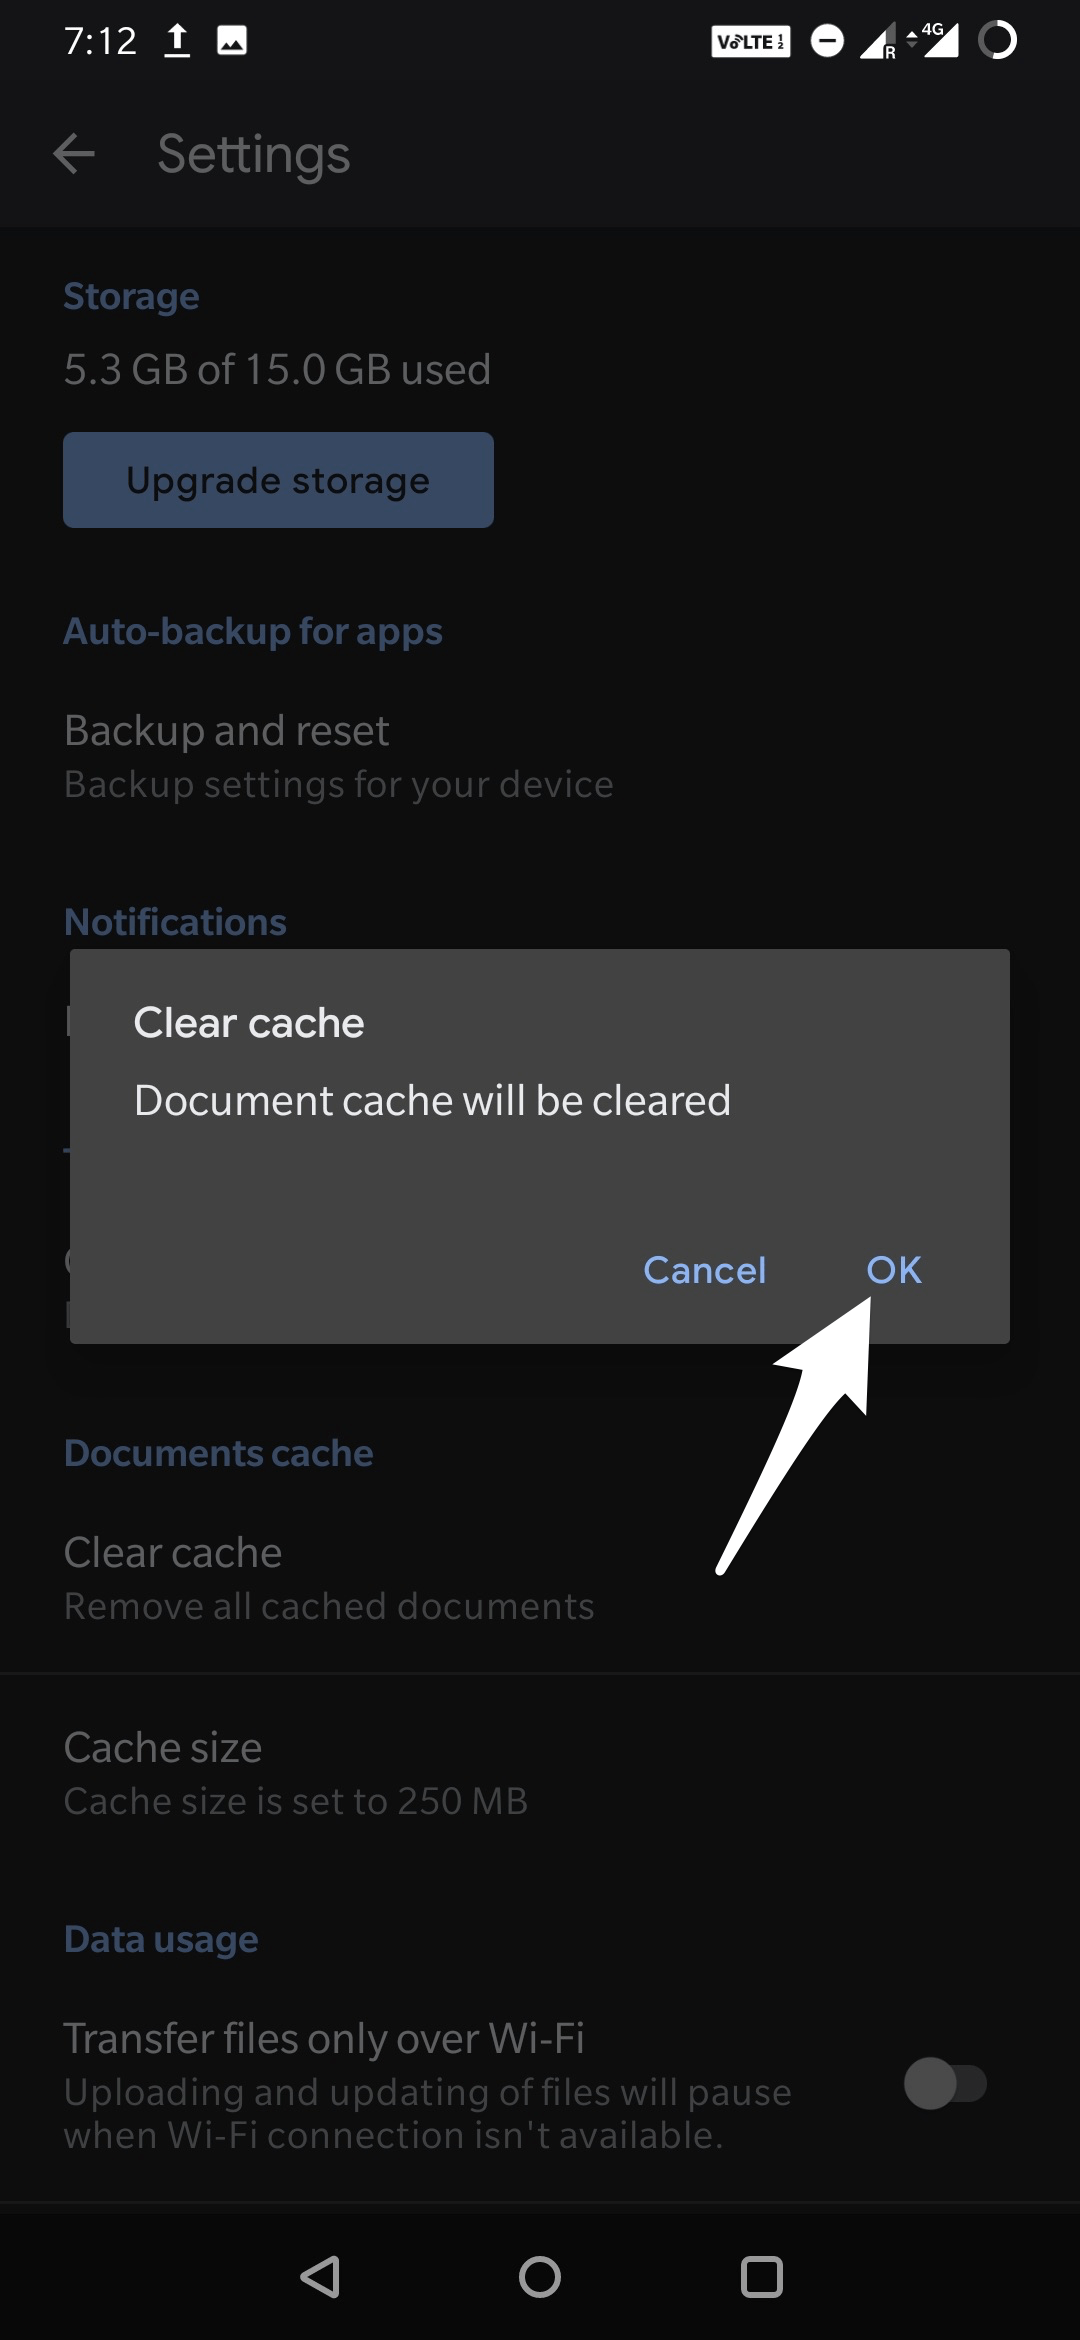 Confirm_Deletion_of_Document_Cache